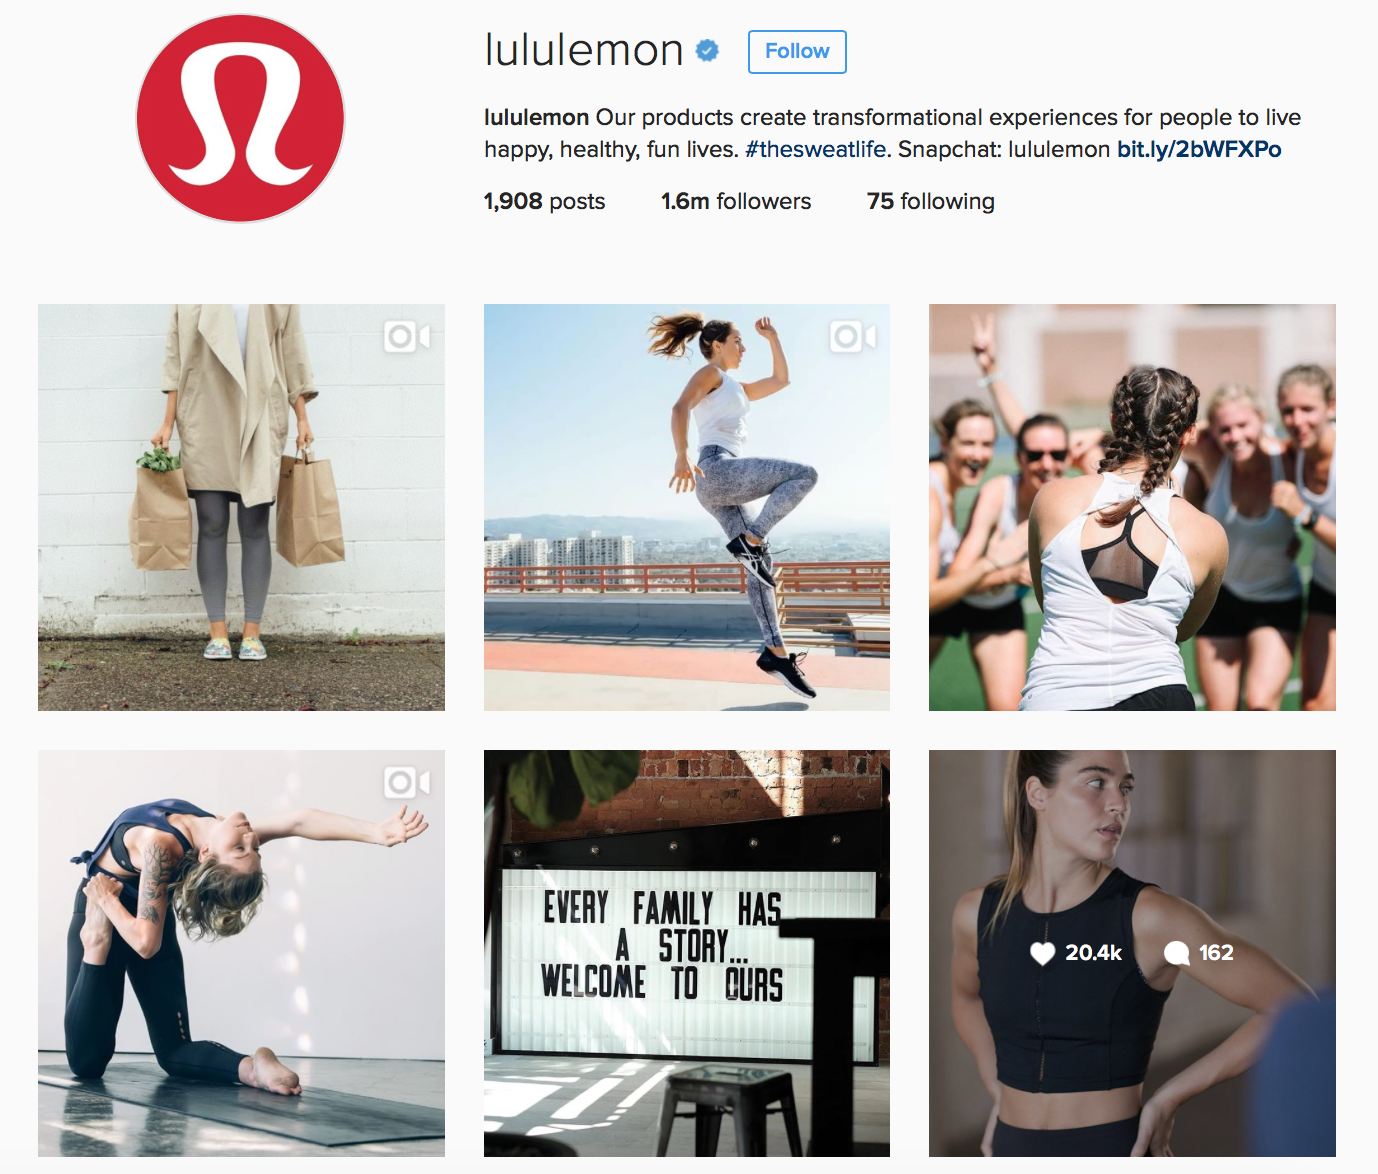 Lululemon Instagram Profile